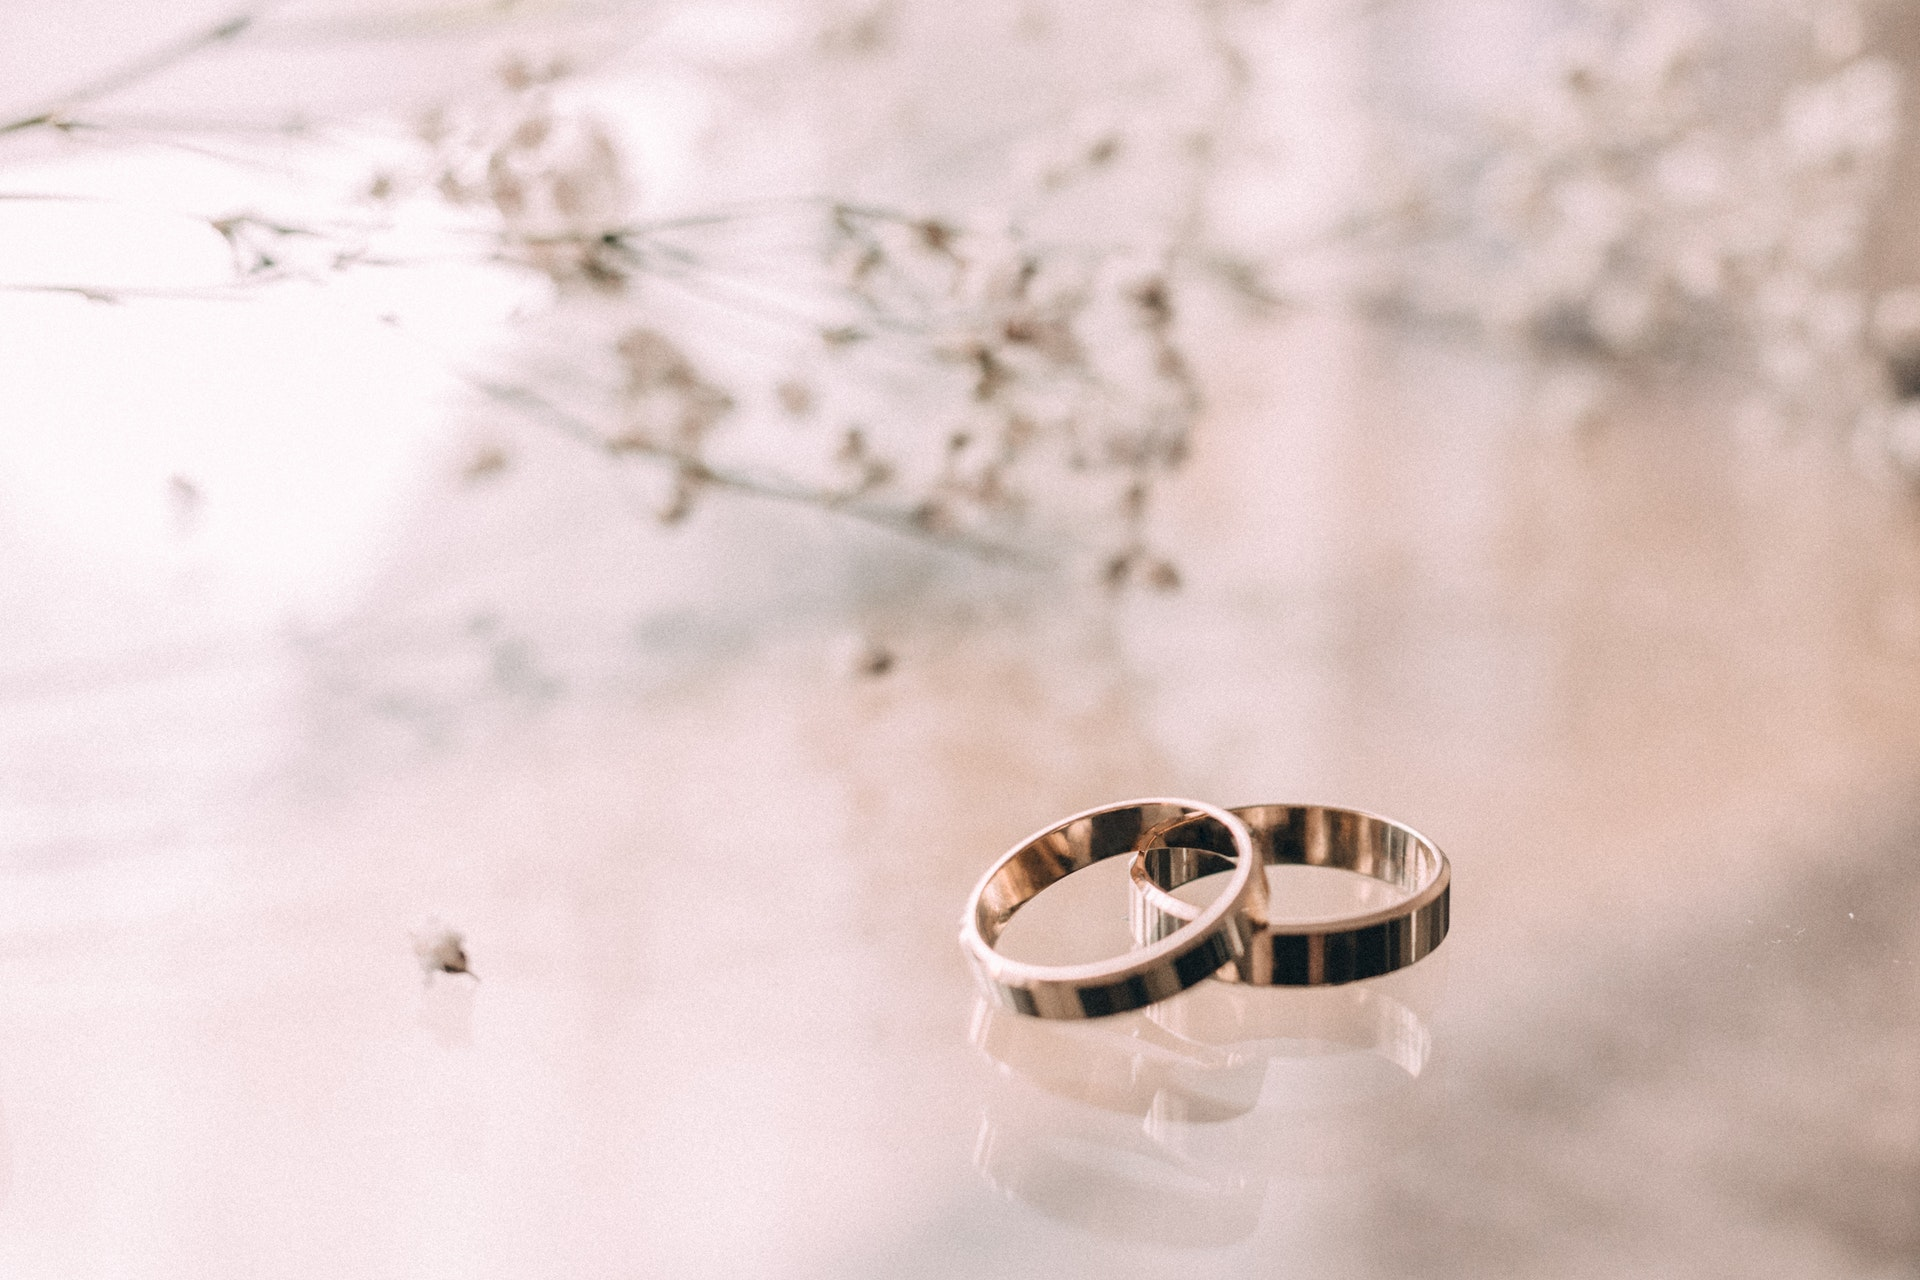 two wedding rings sitting on reflective table with small branch with little white flowers blurred in background